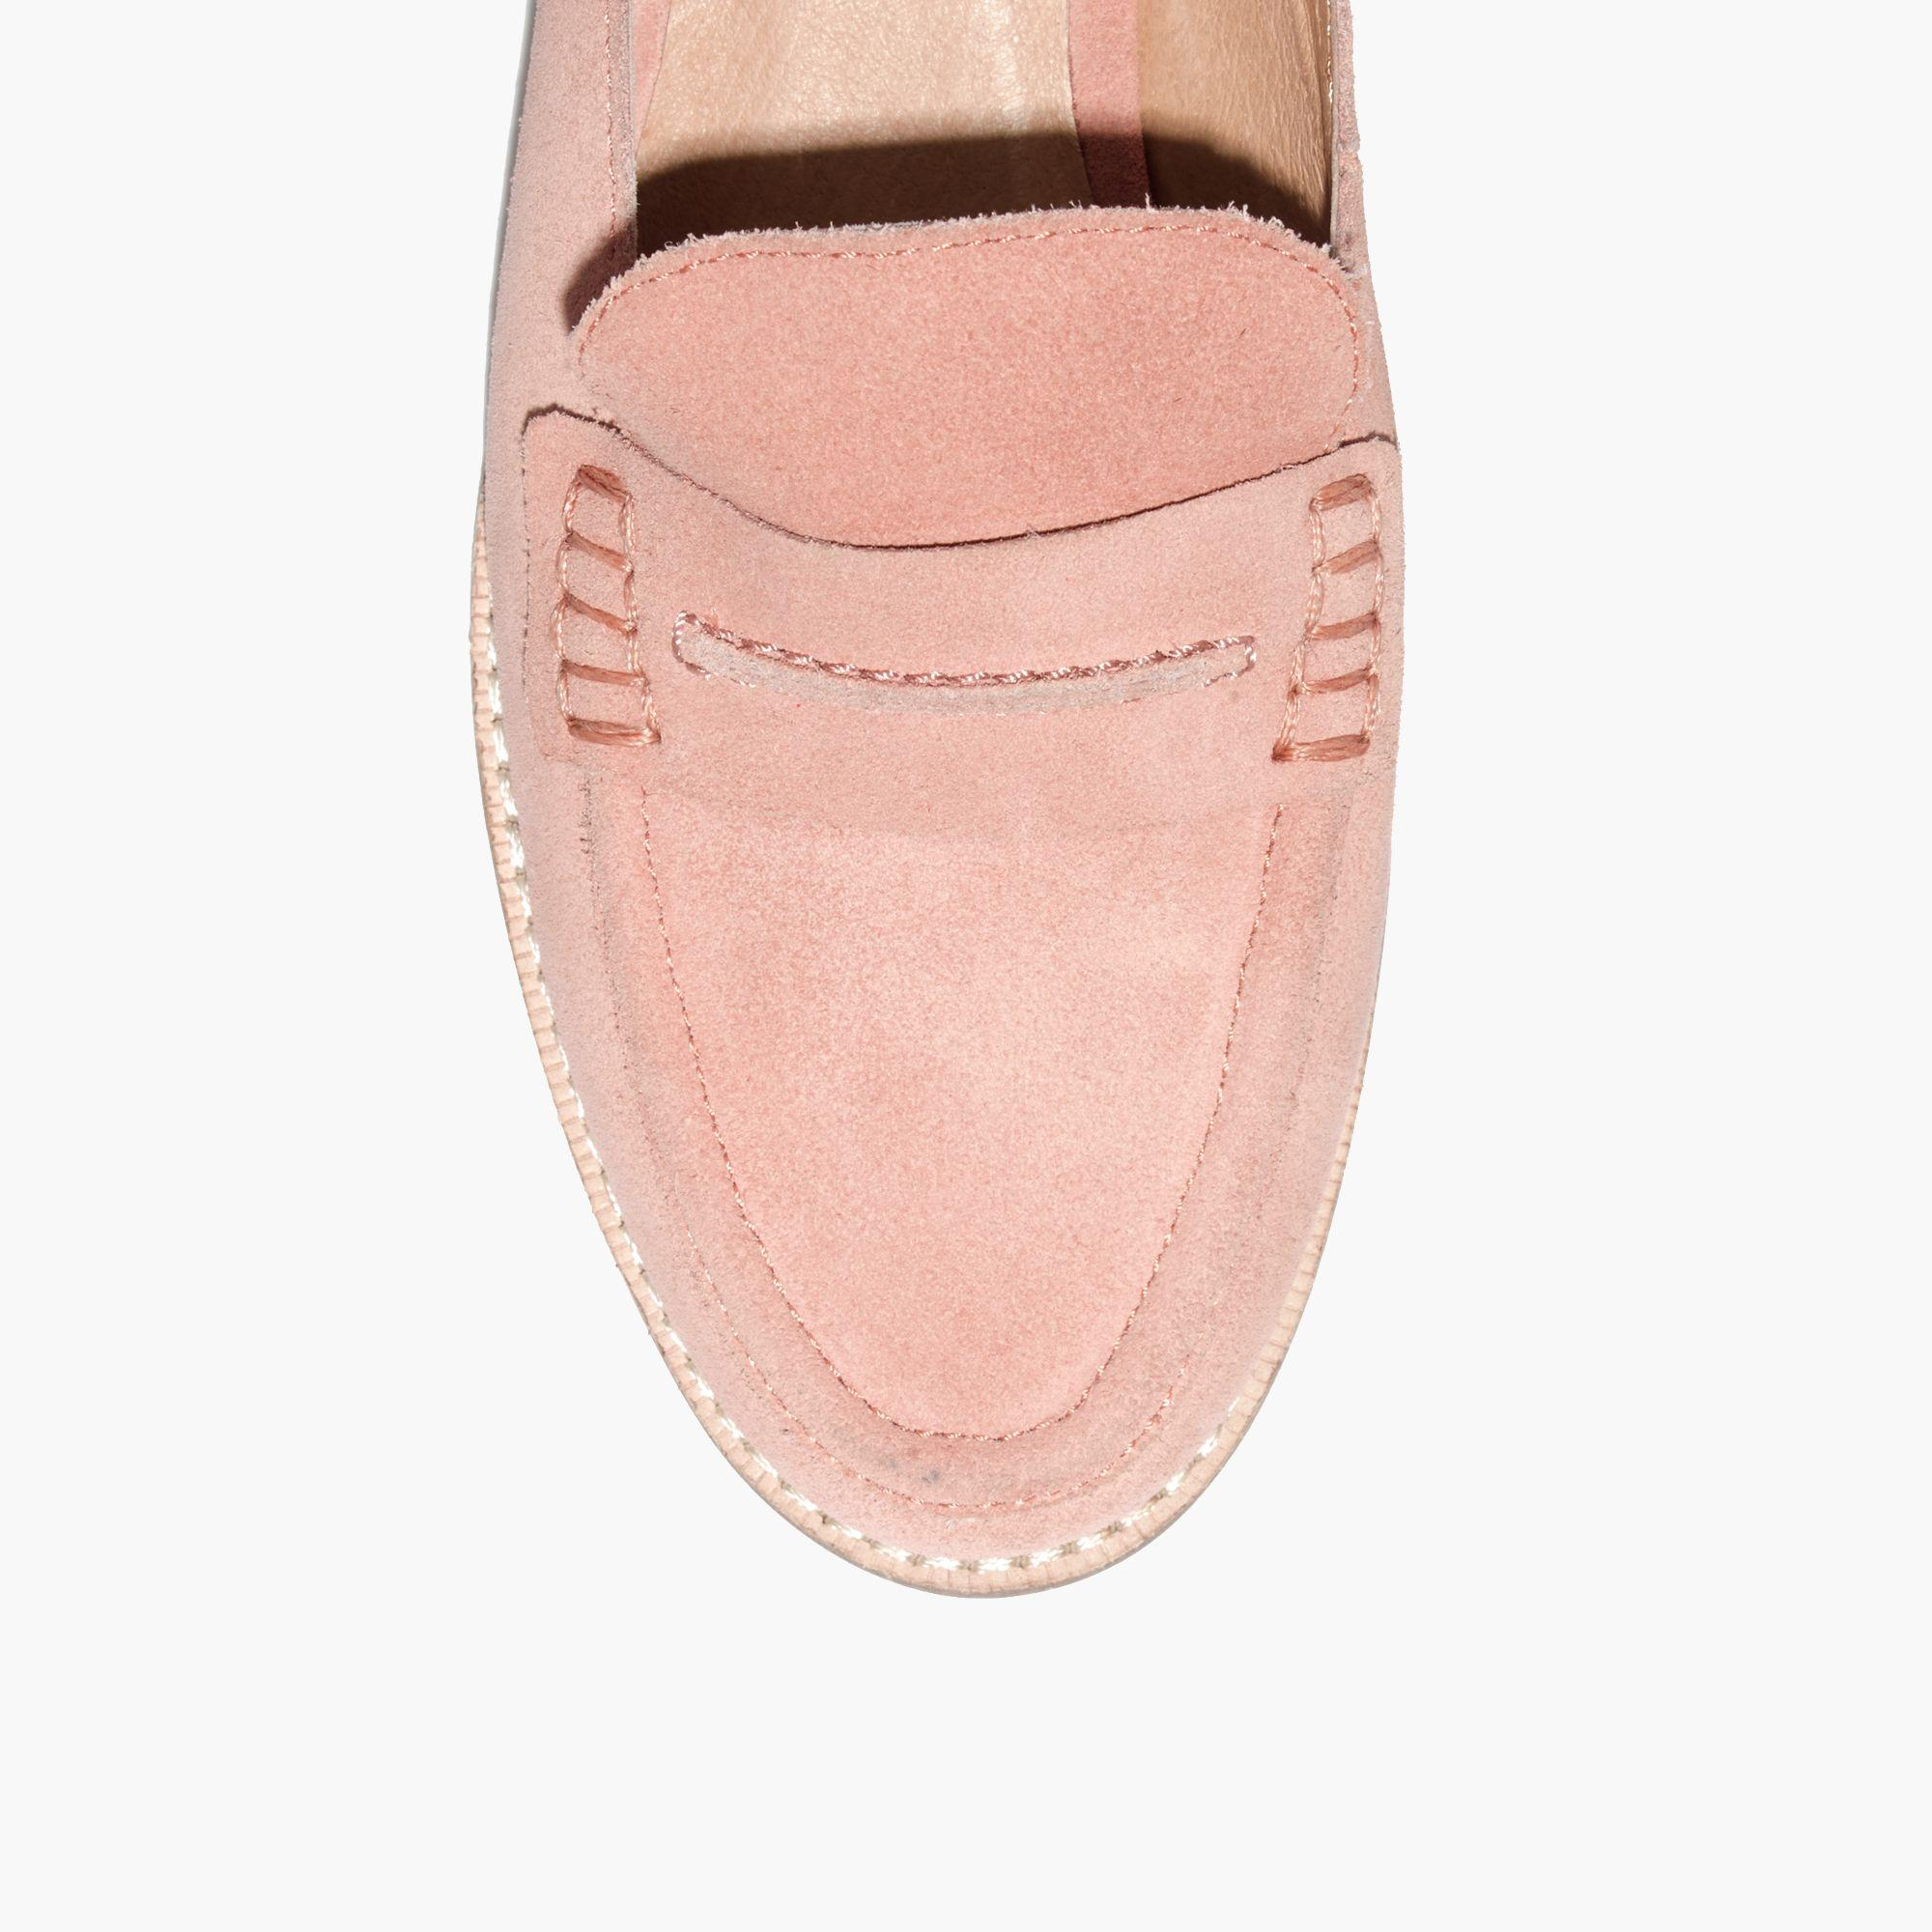 fe0731f8784 Lyst - Madewell The Elinor Loafer Mule in Pink